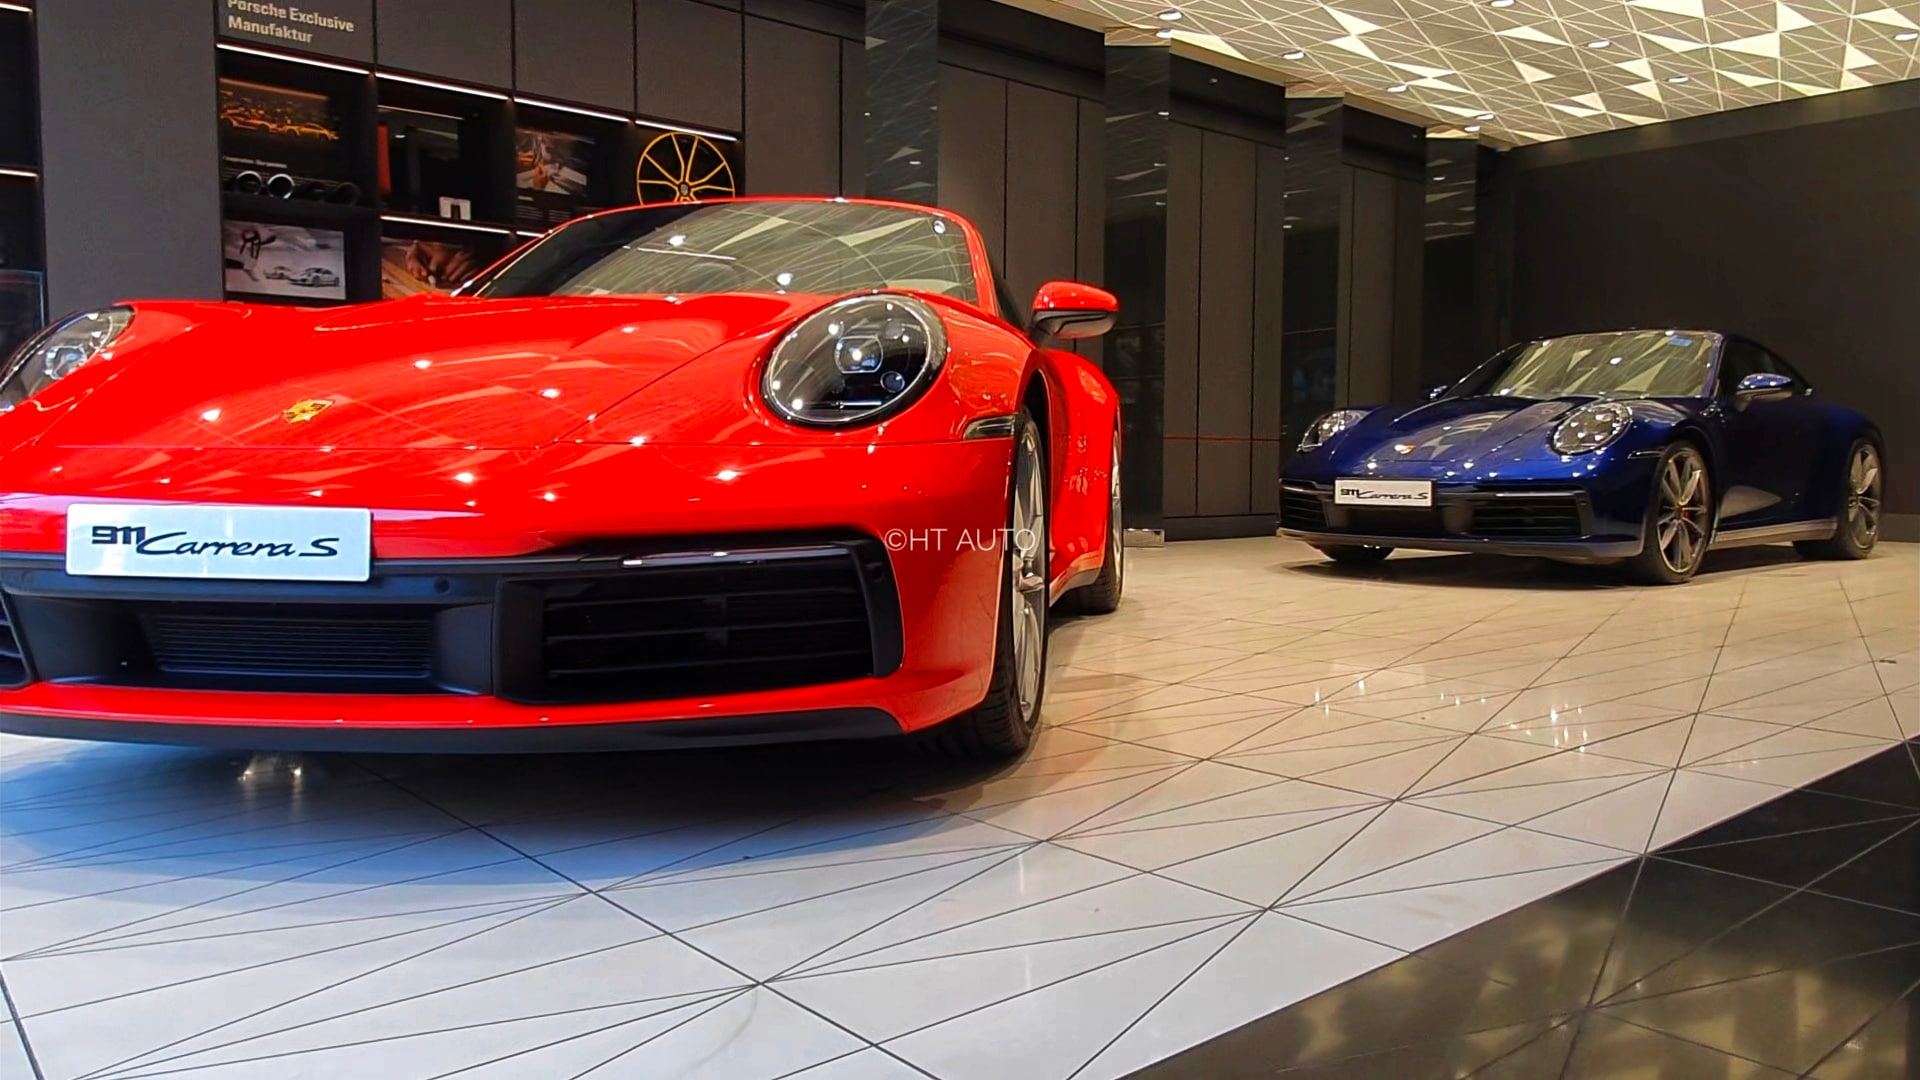 The showroom has space enough to showcase two cars at a time. But if one is a Porsche fan, he can spend quality time being lost at the carmaker's history carefully framed across the showroom. (Sabyasachi Dasguptga/HT Auto)